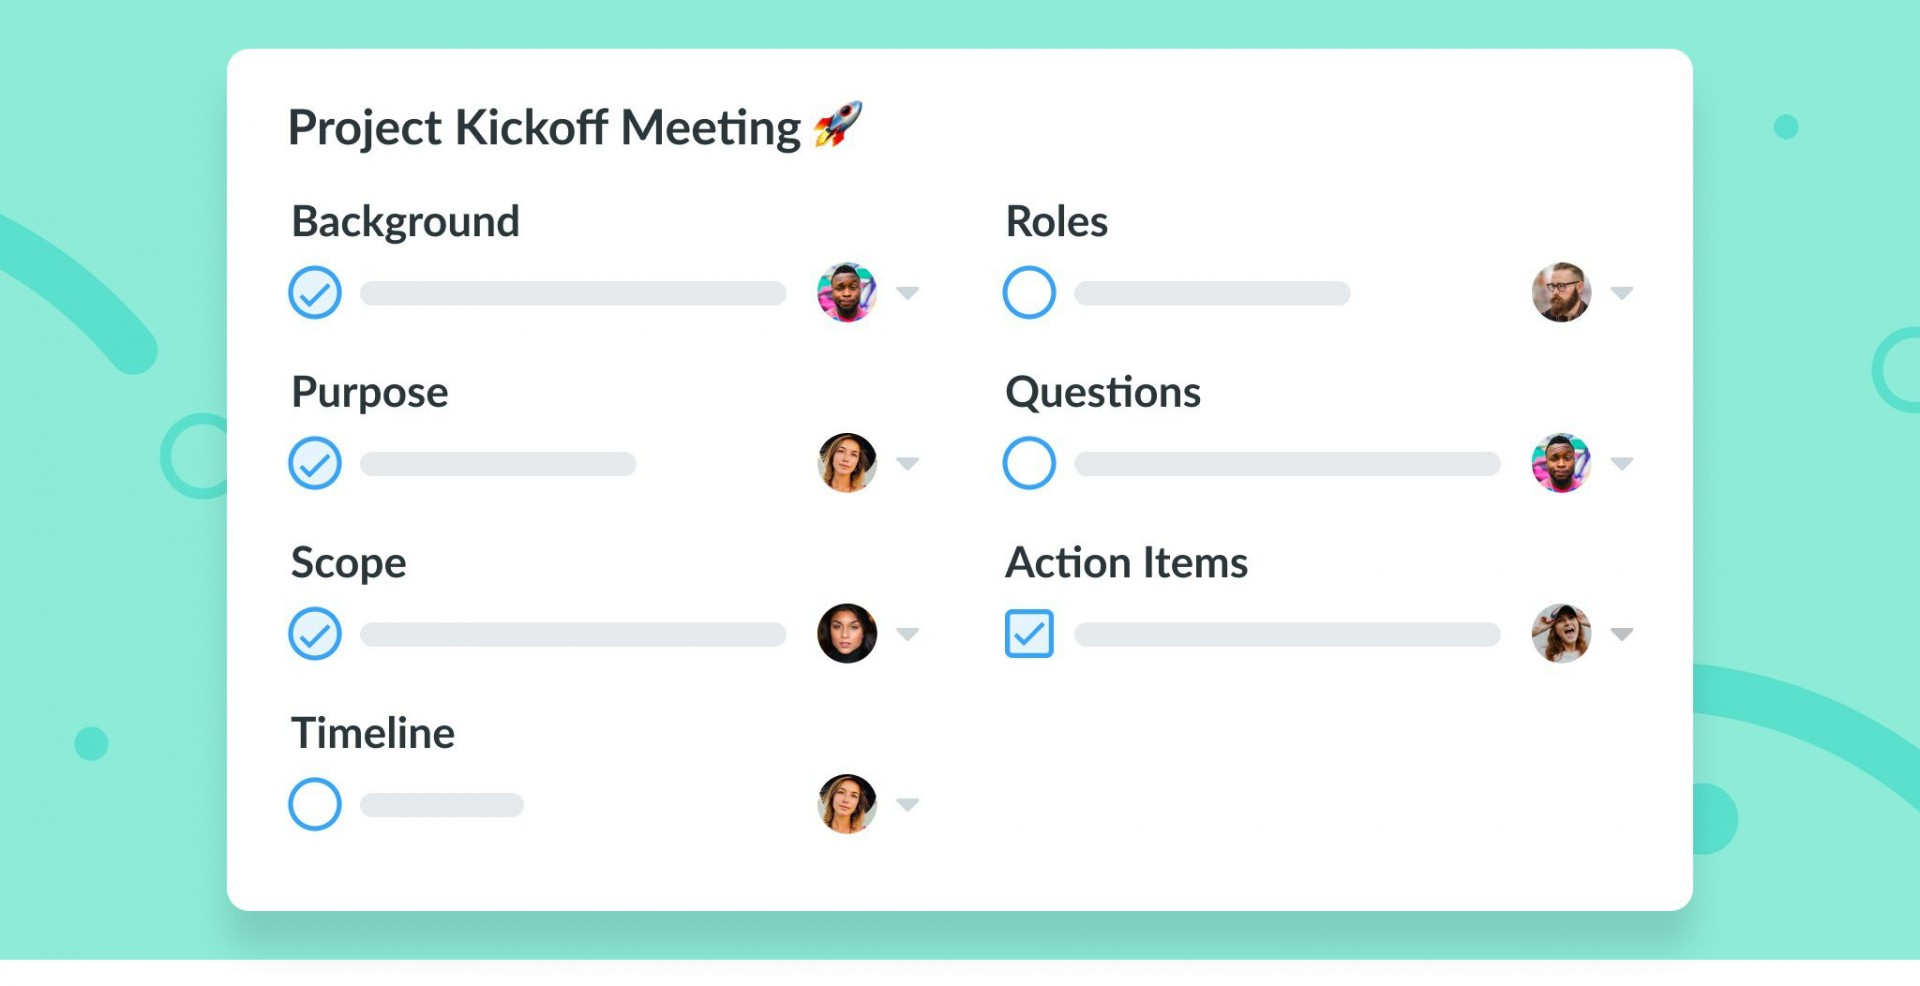 007 Archaicawful Kick Off Meeting Template Inspiration  Invitation Email Agenda Project Management1920